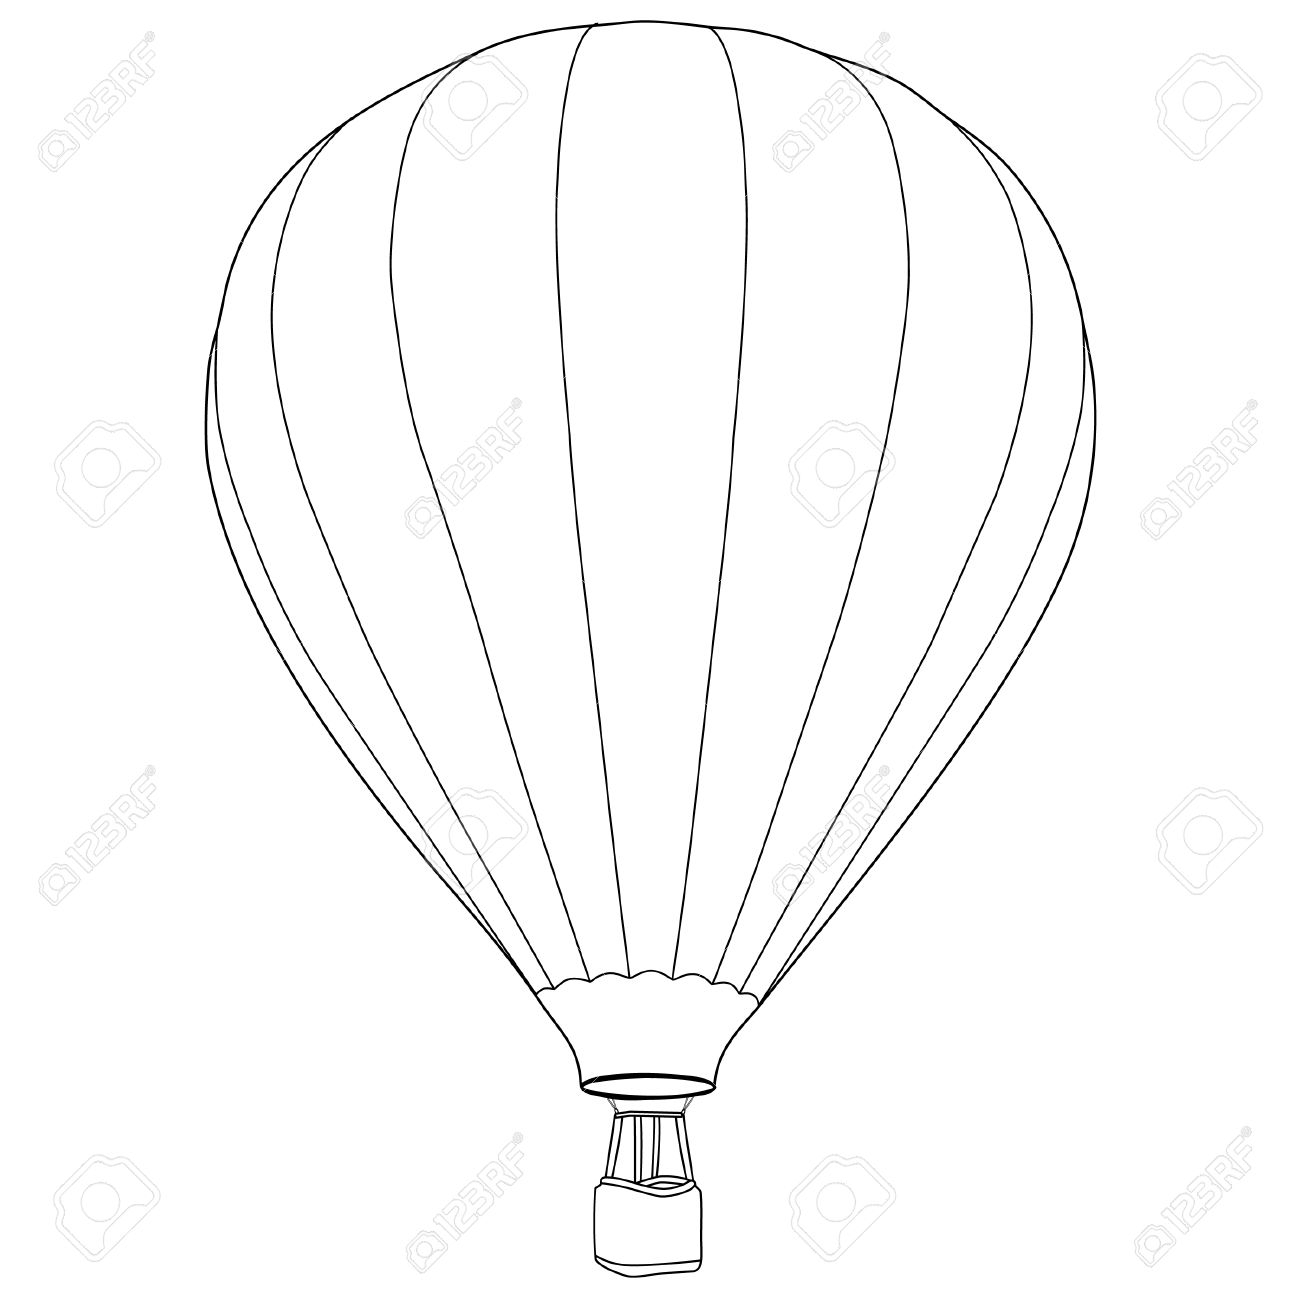 Drawing of balloons at. Balloon clipart line